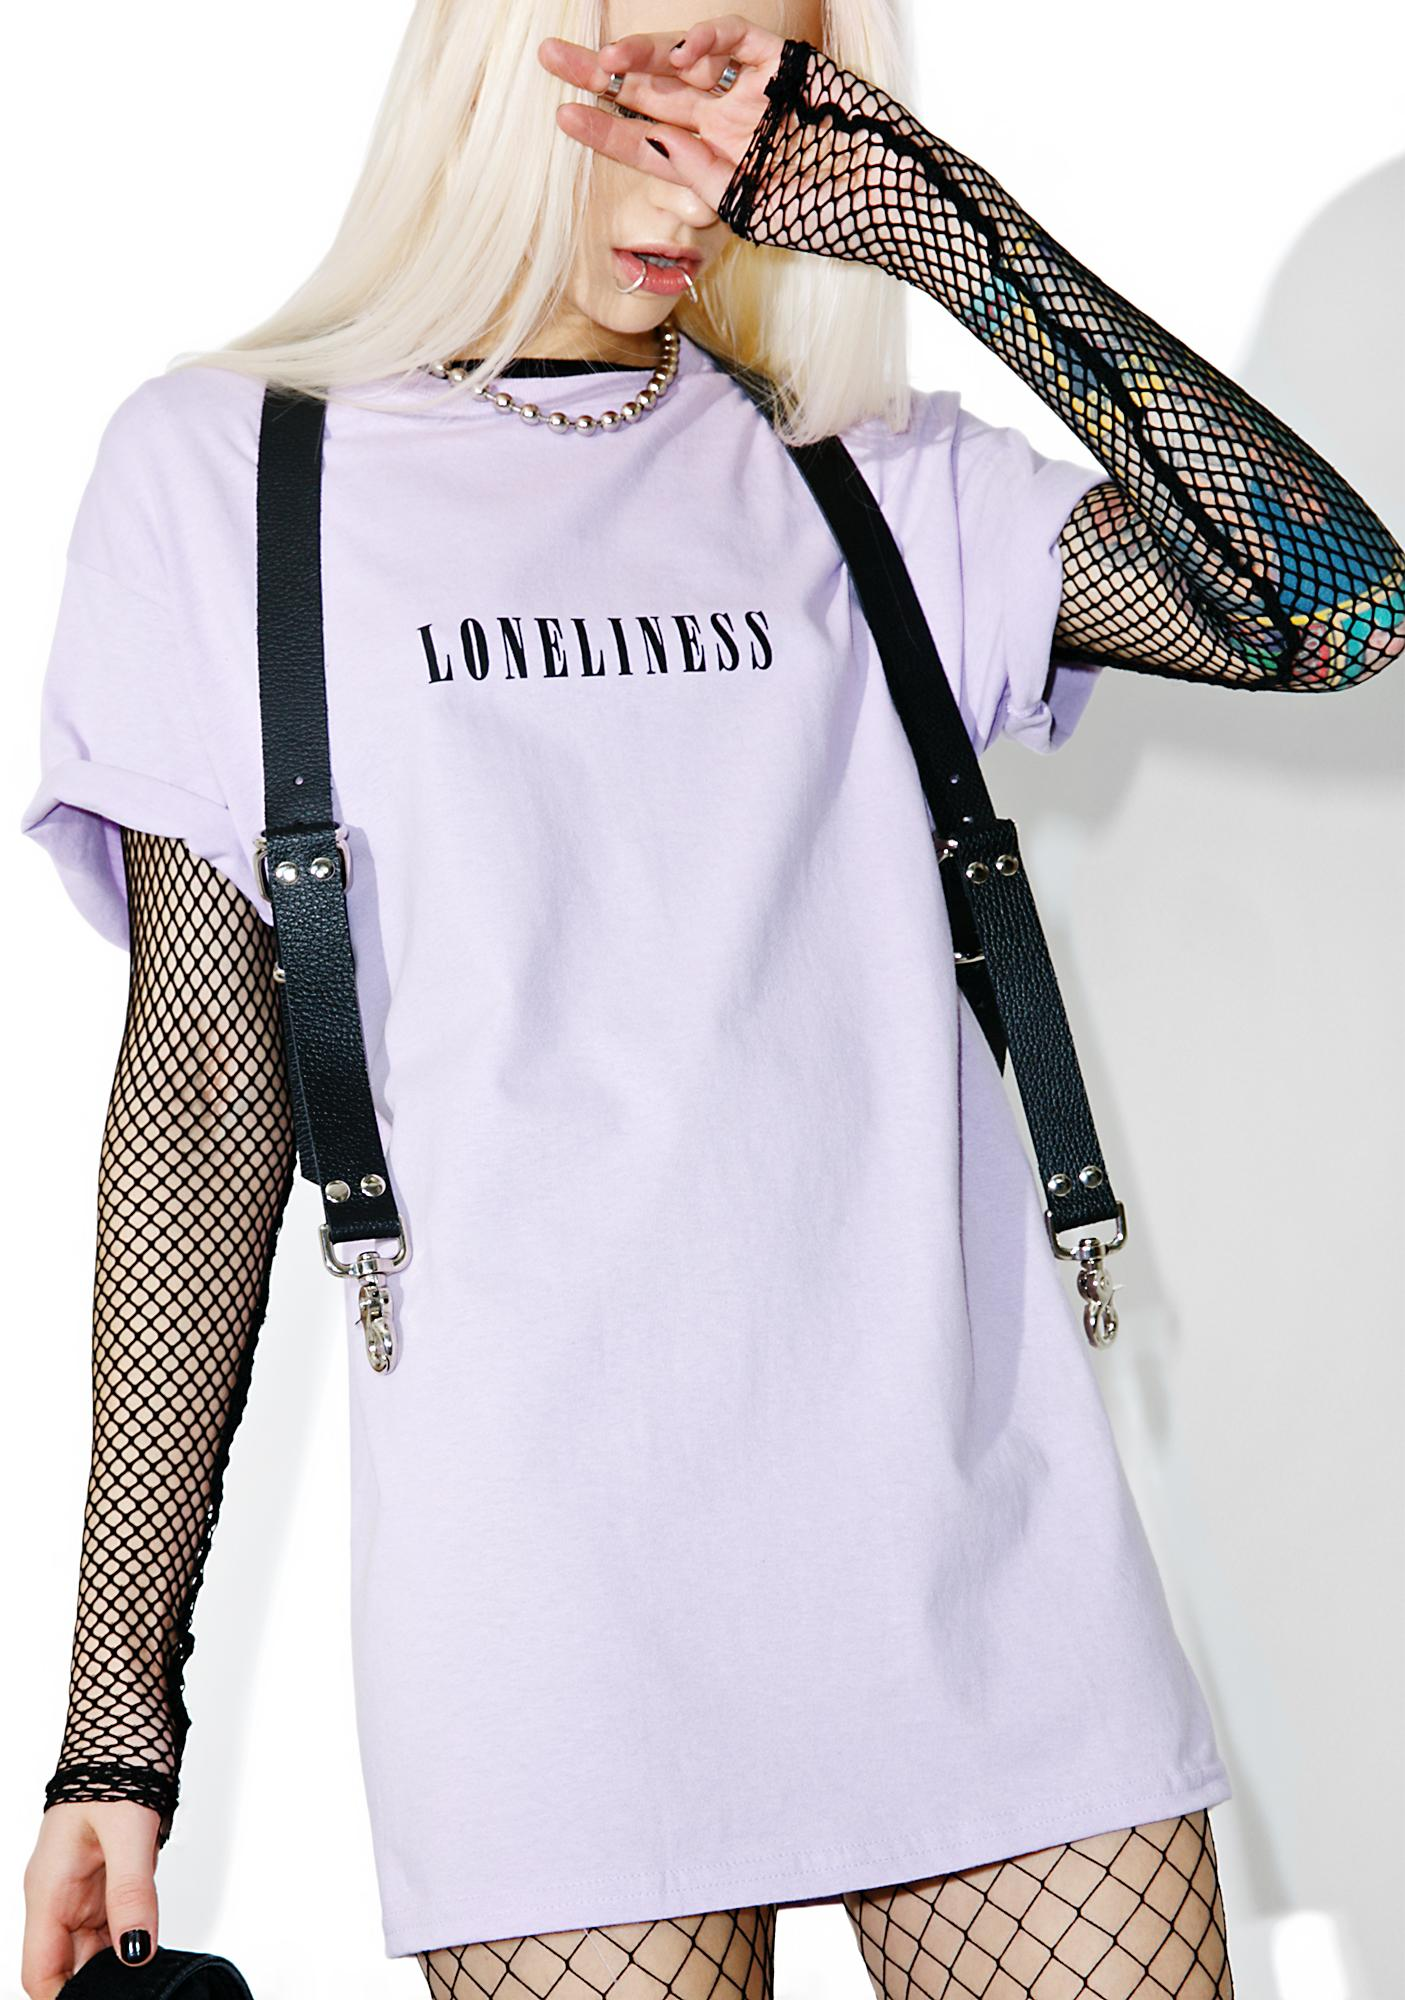 The Ragged Priest Loneliness Tee